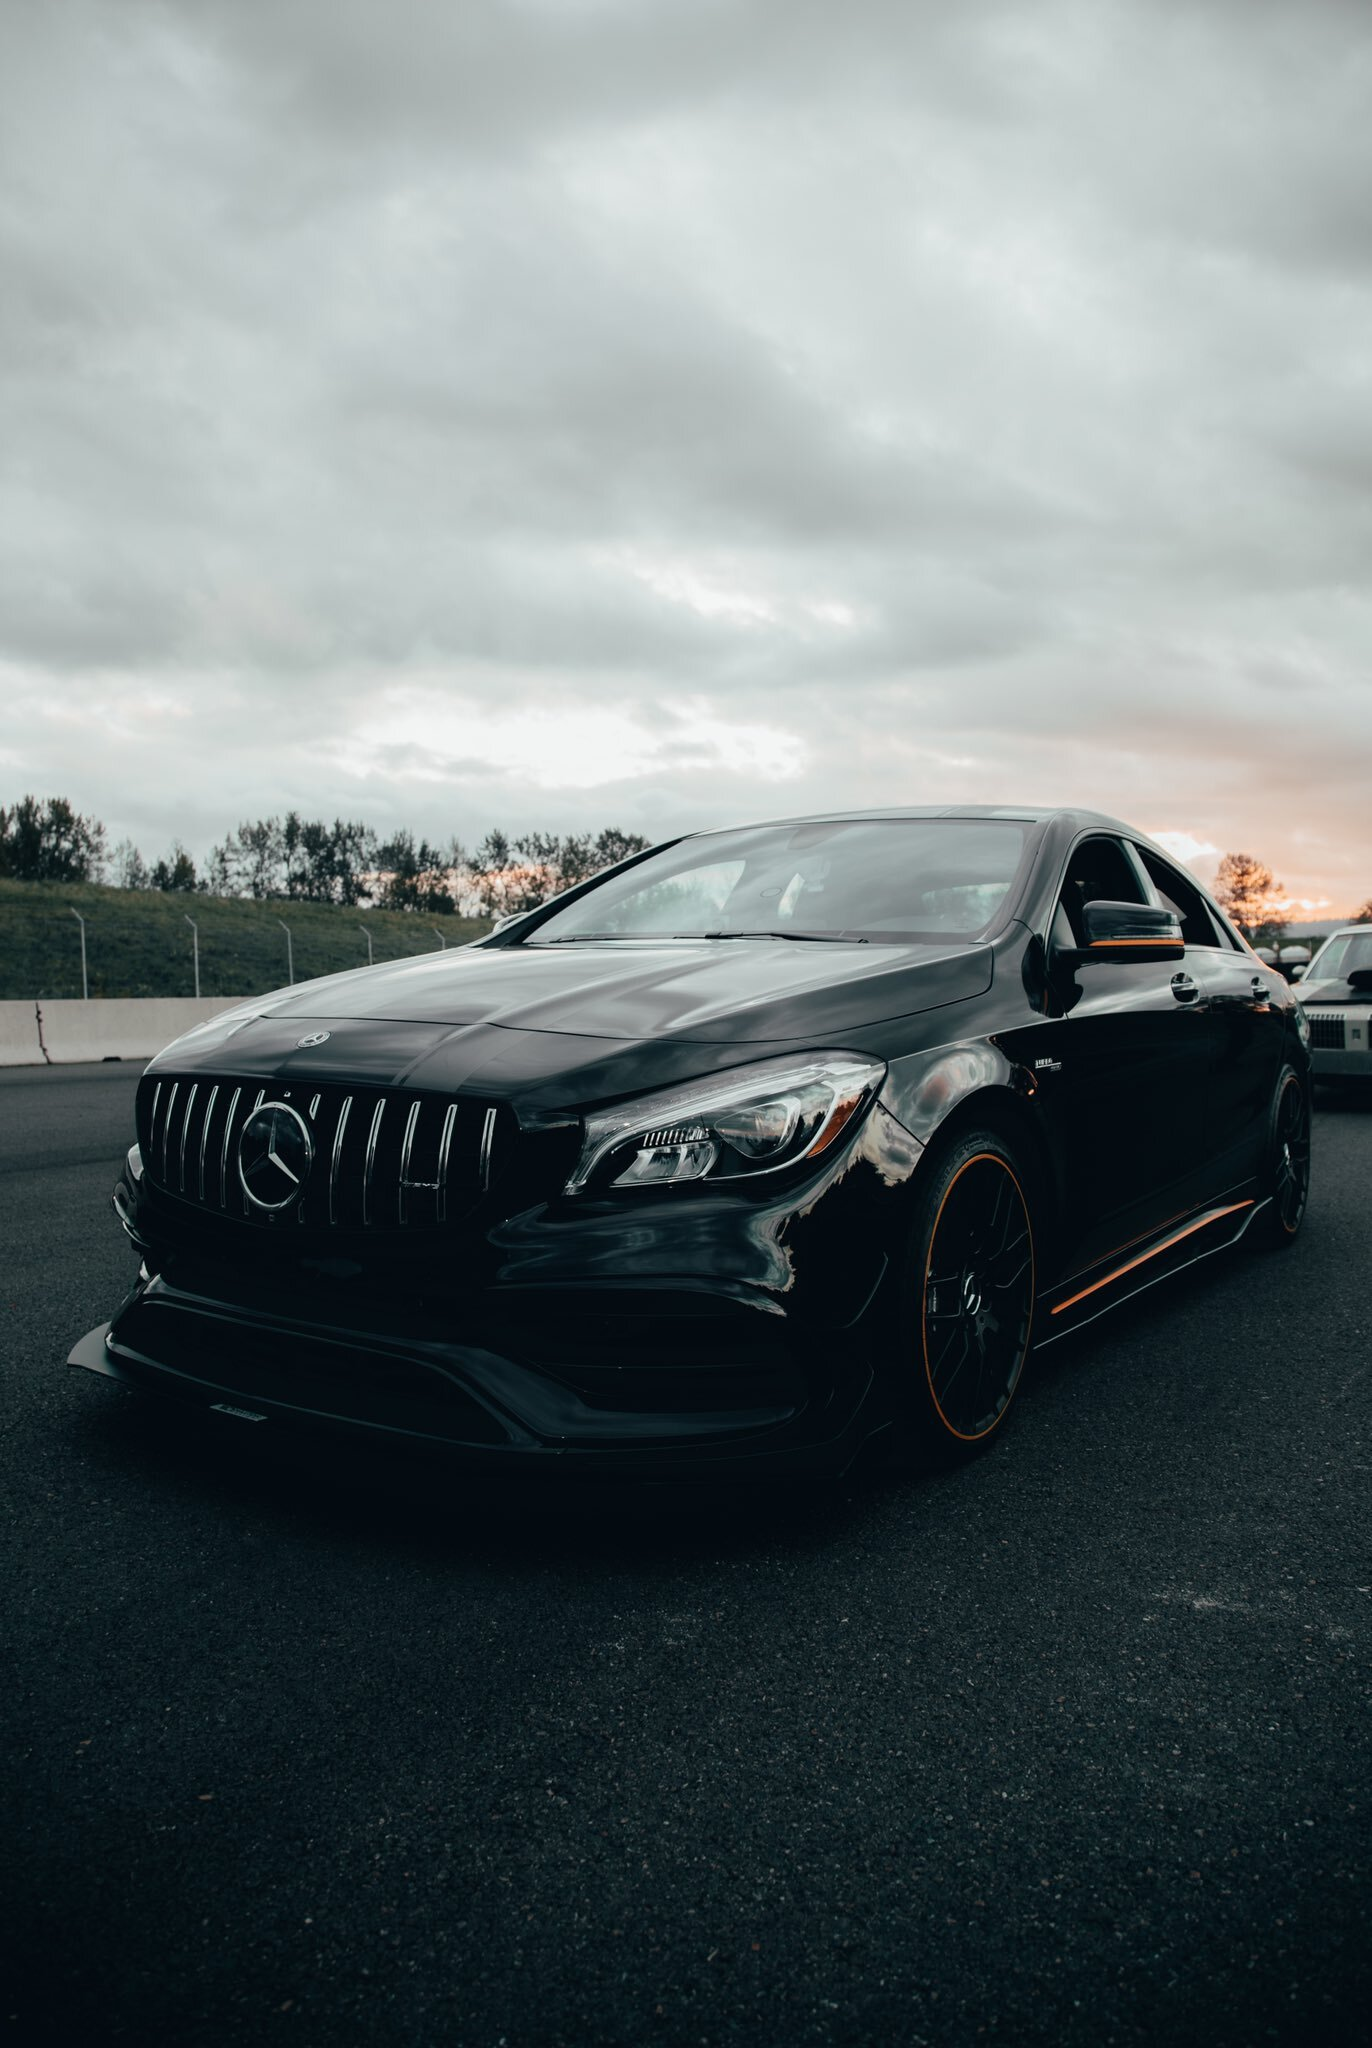 Night Black 2019 Mercedes-Benz CLA45 AMG